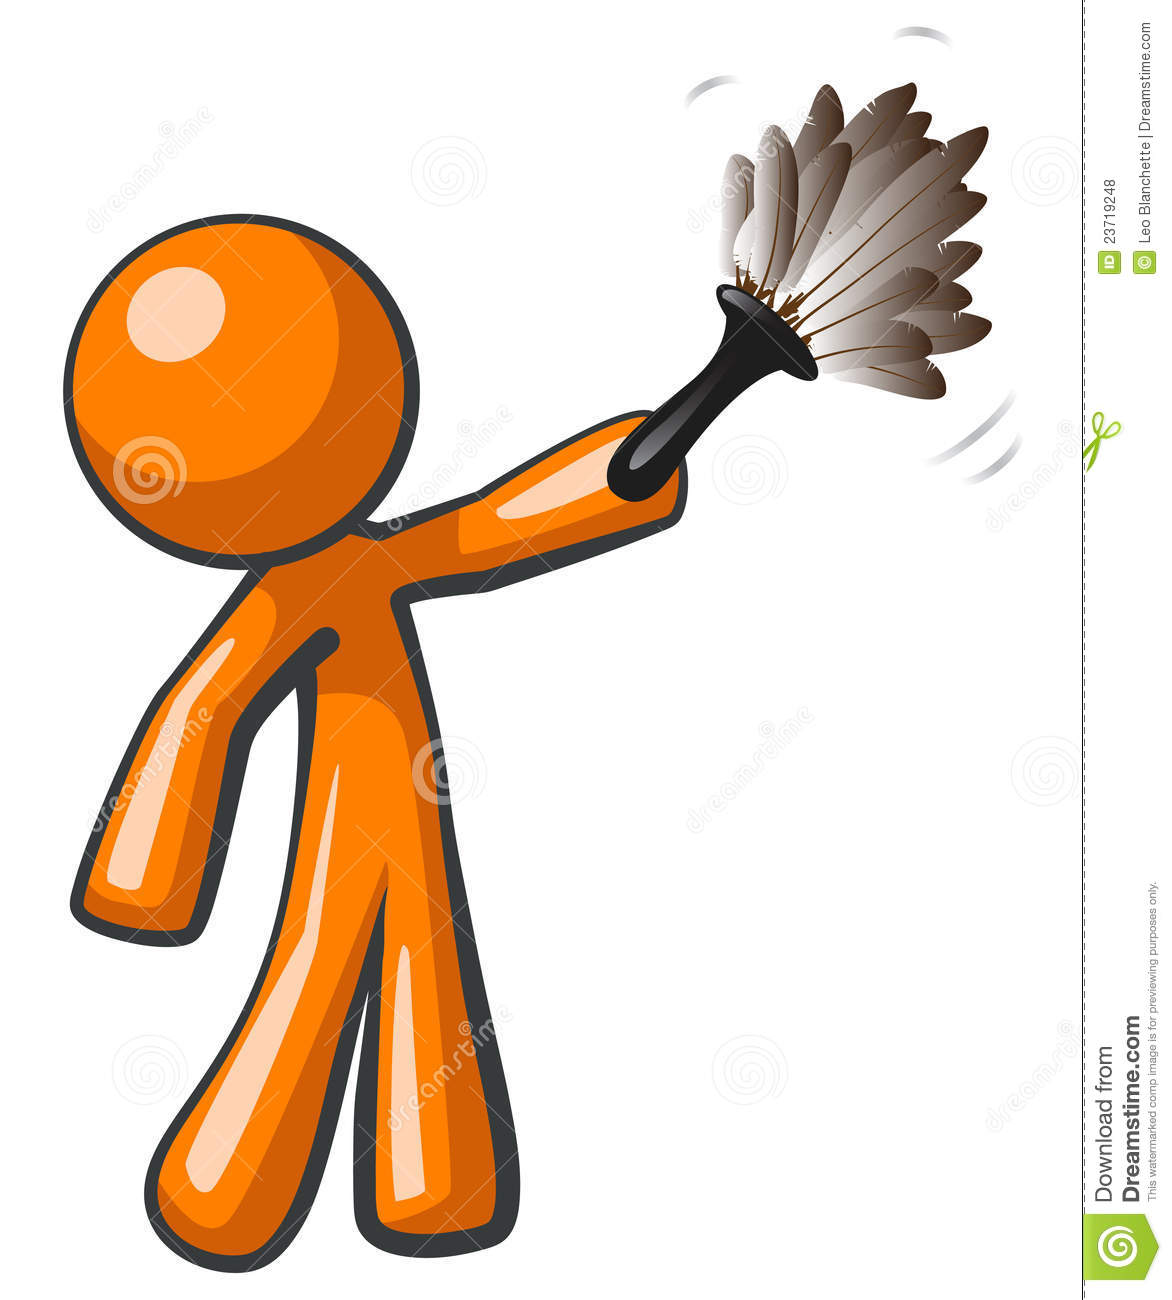 Orange Man Holding Feather Duster Royalty Free Stock